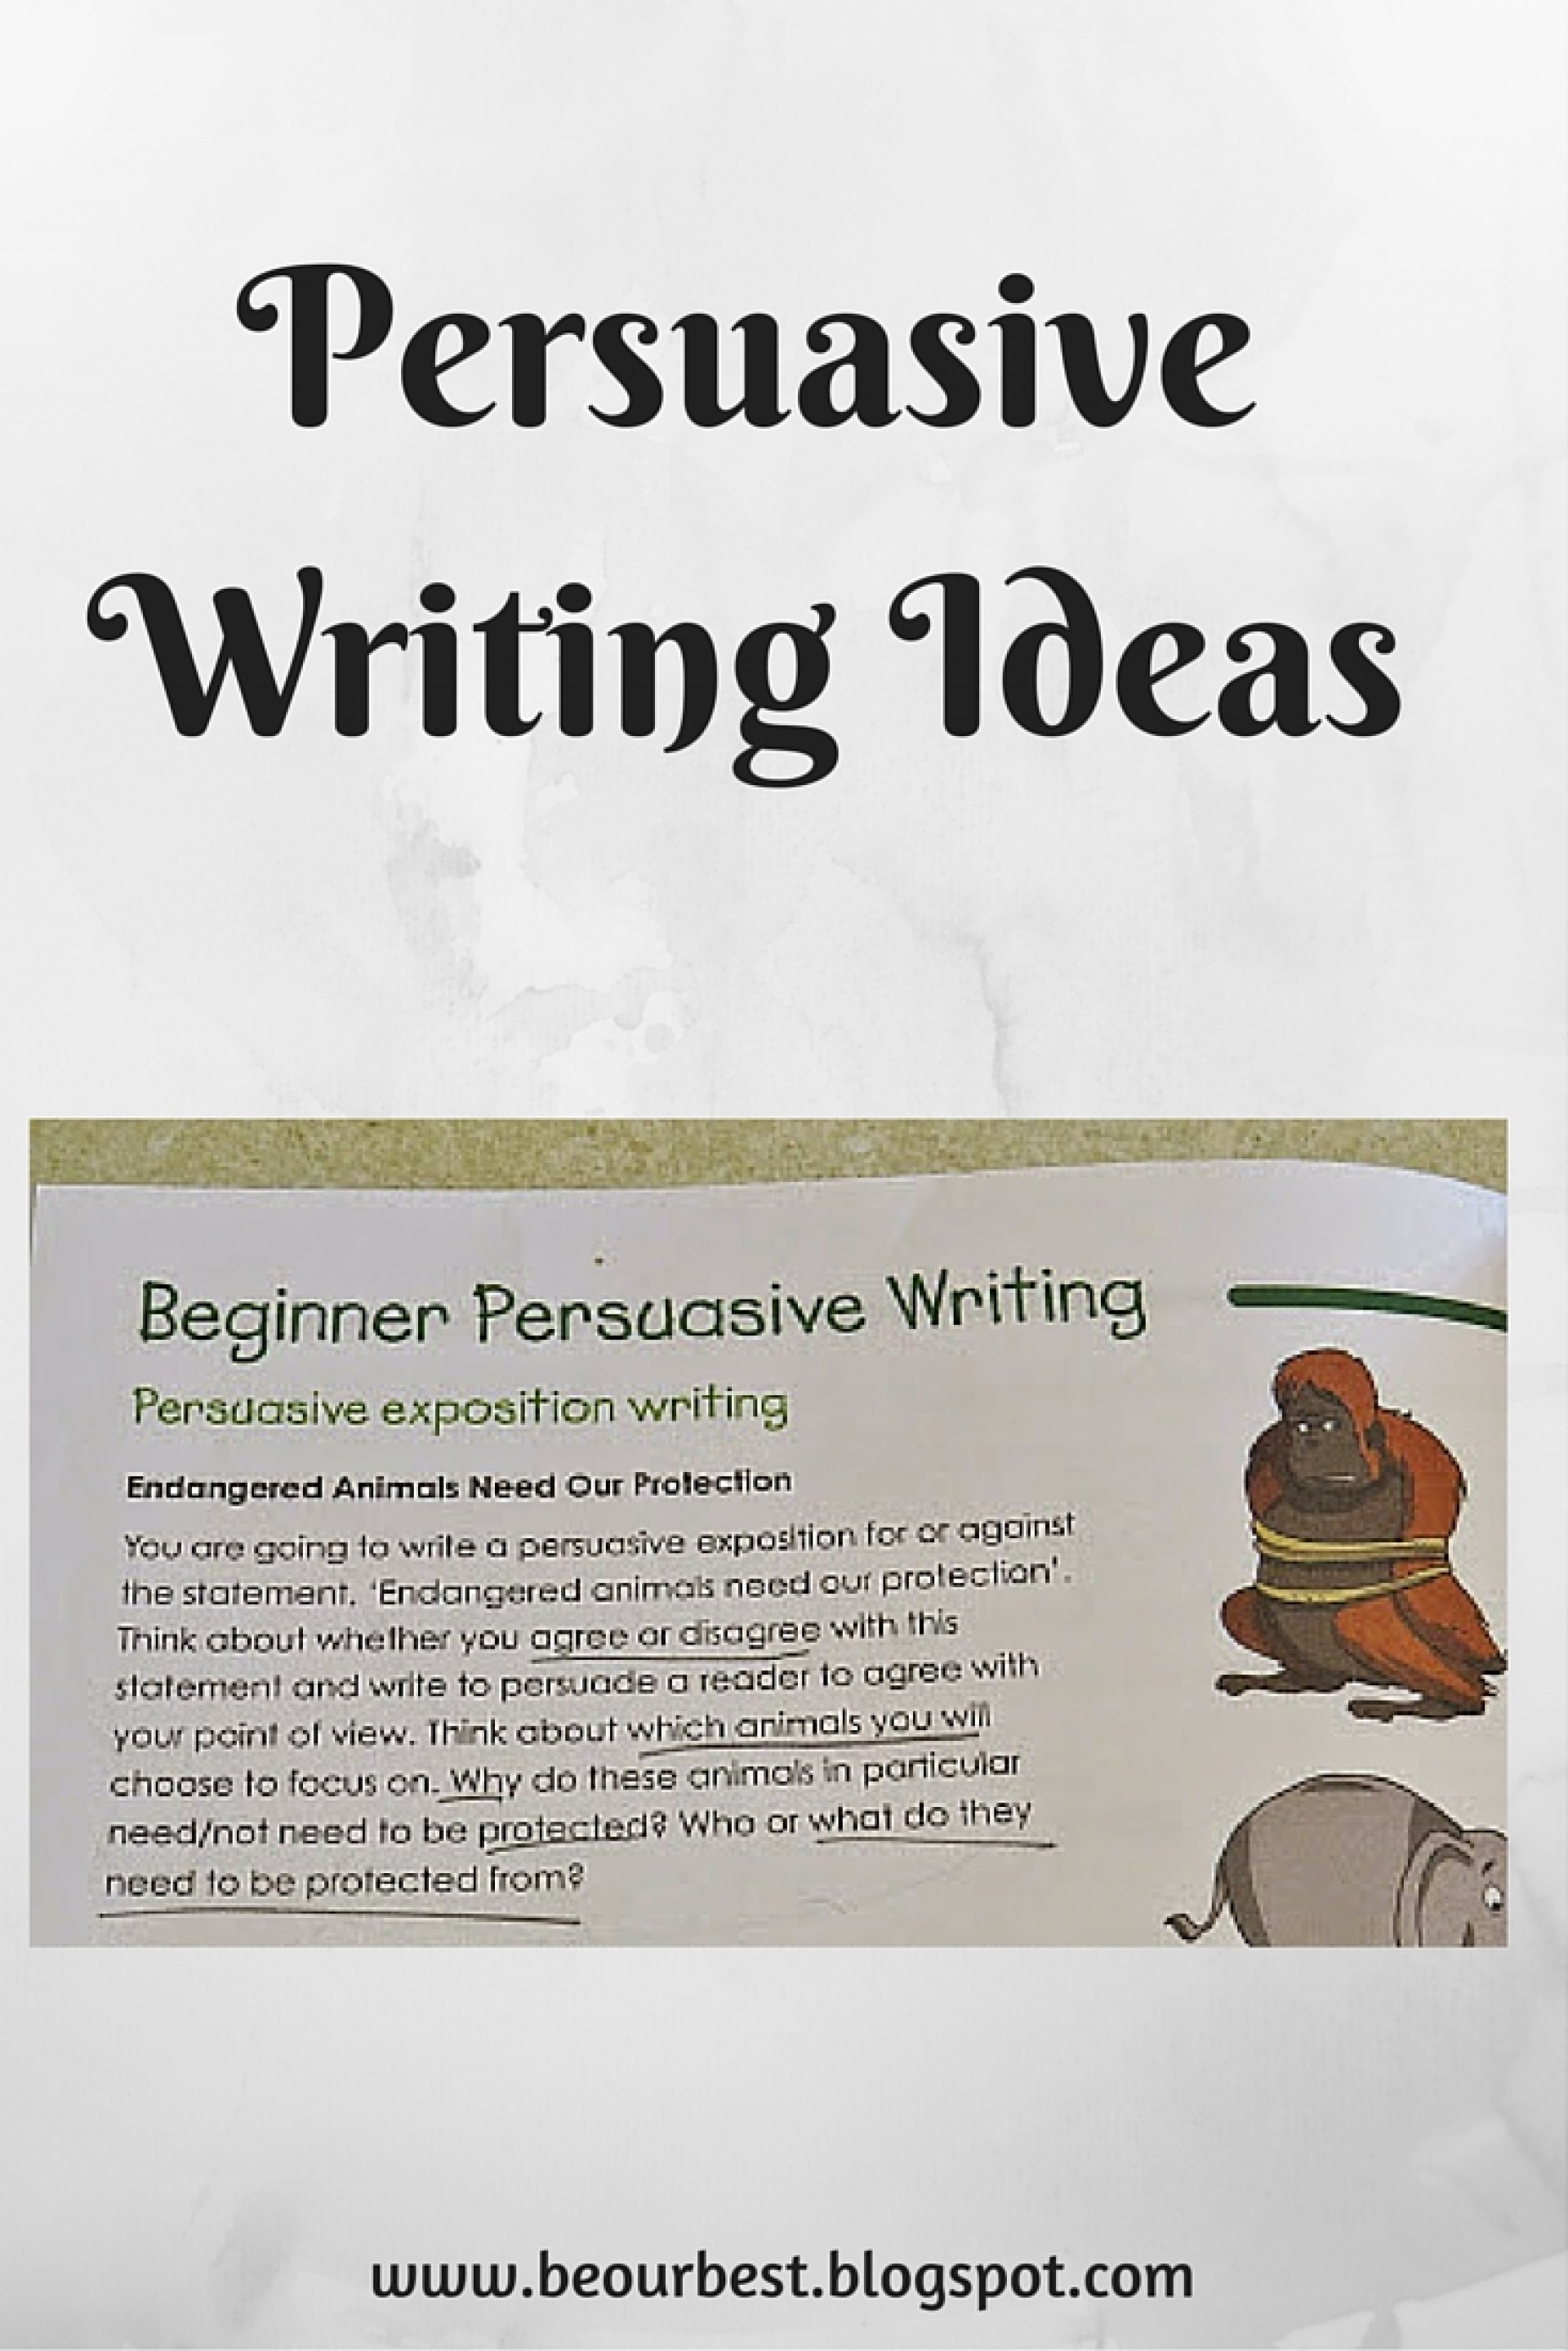 014 Topics For Persuasive Essays Essay Example Incredible 4th Grade 1920